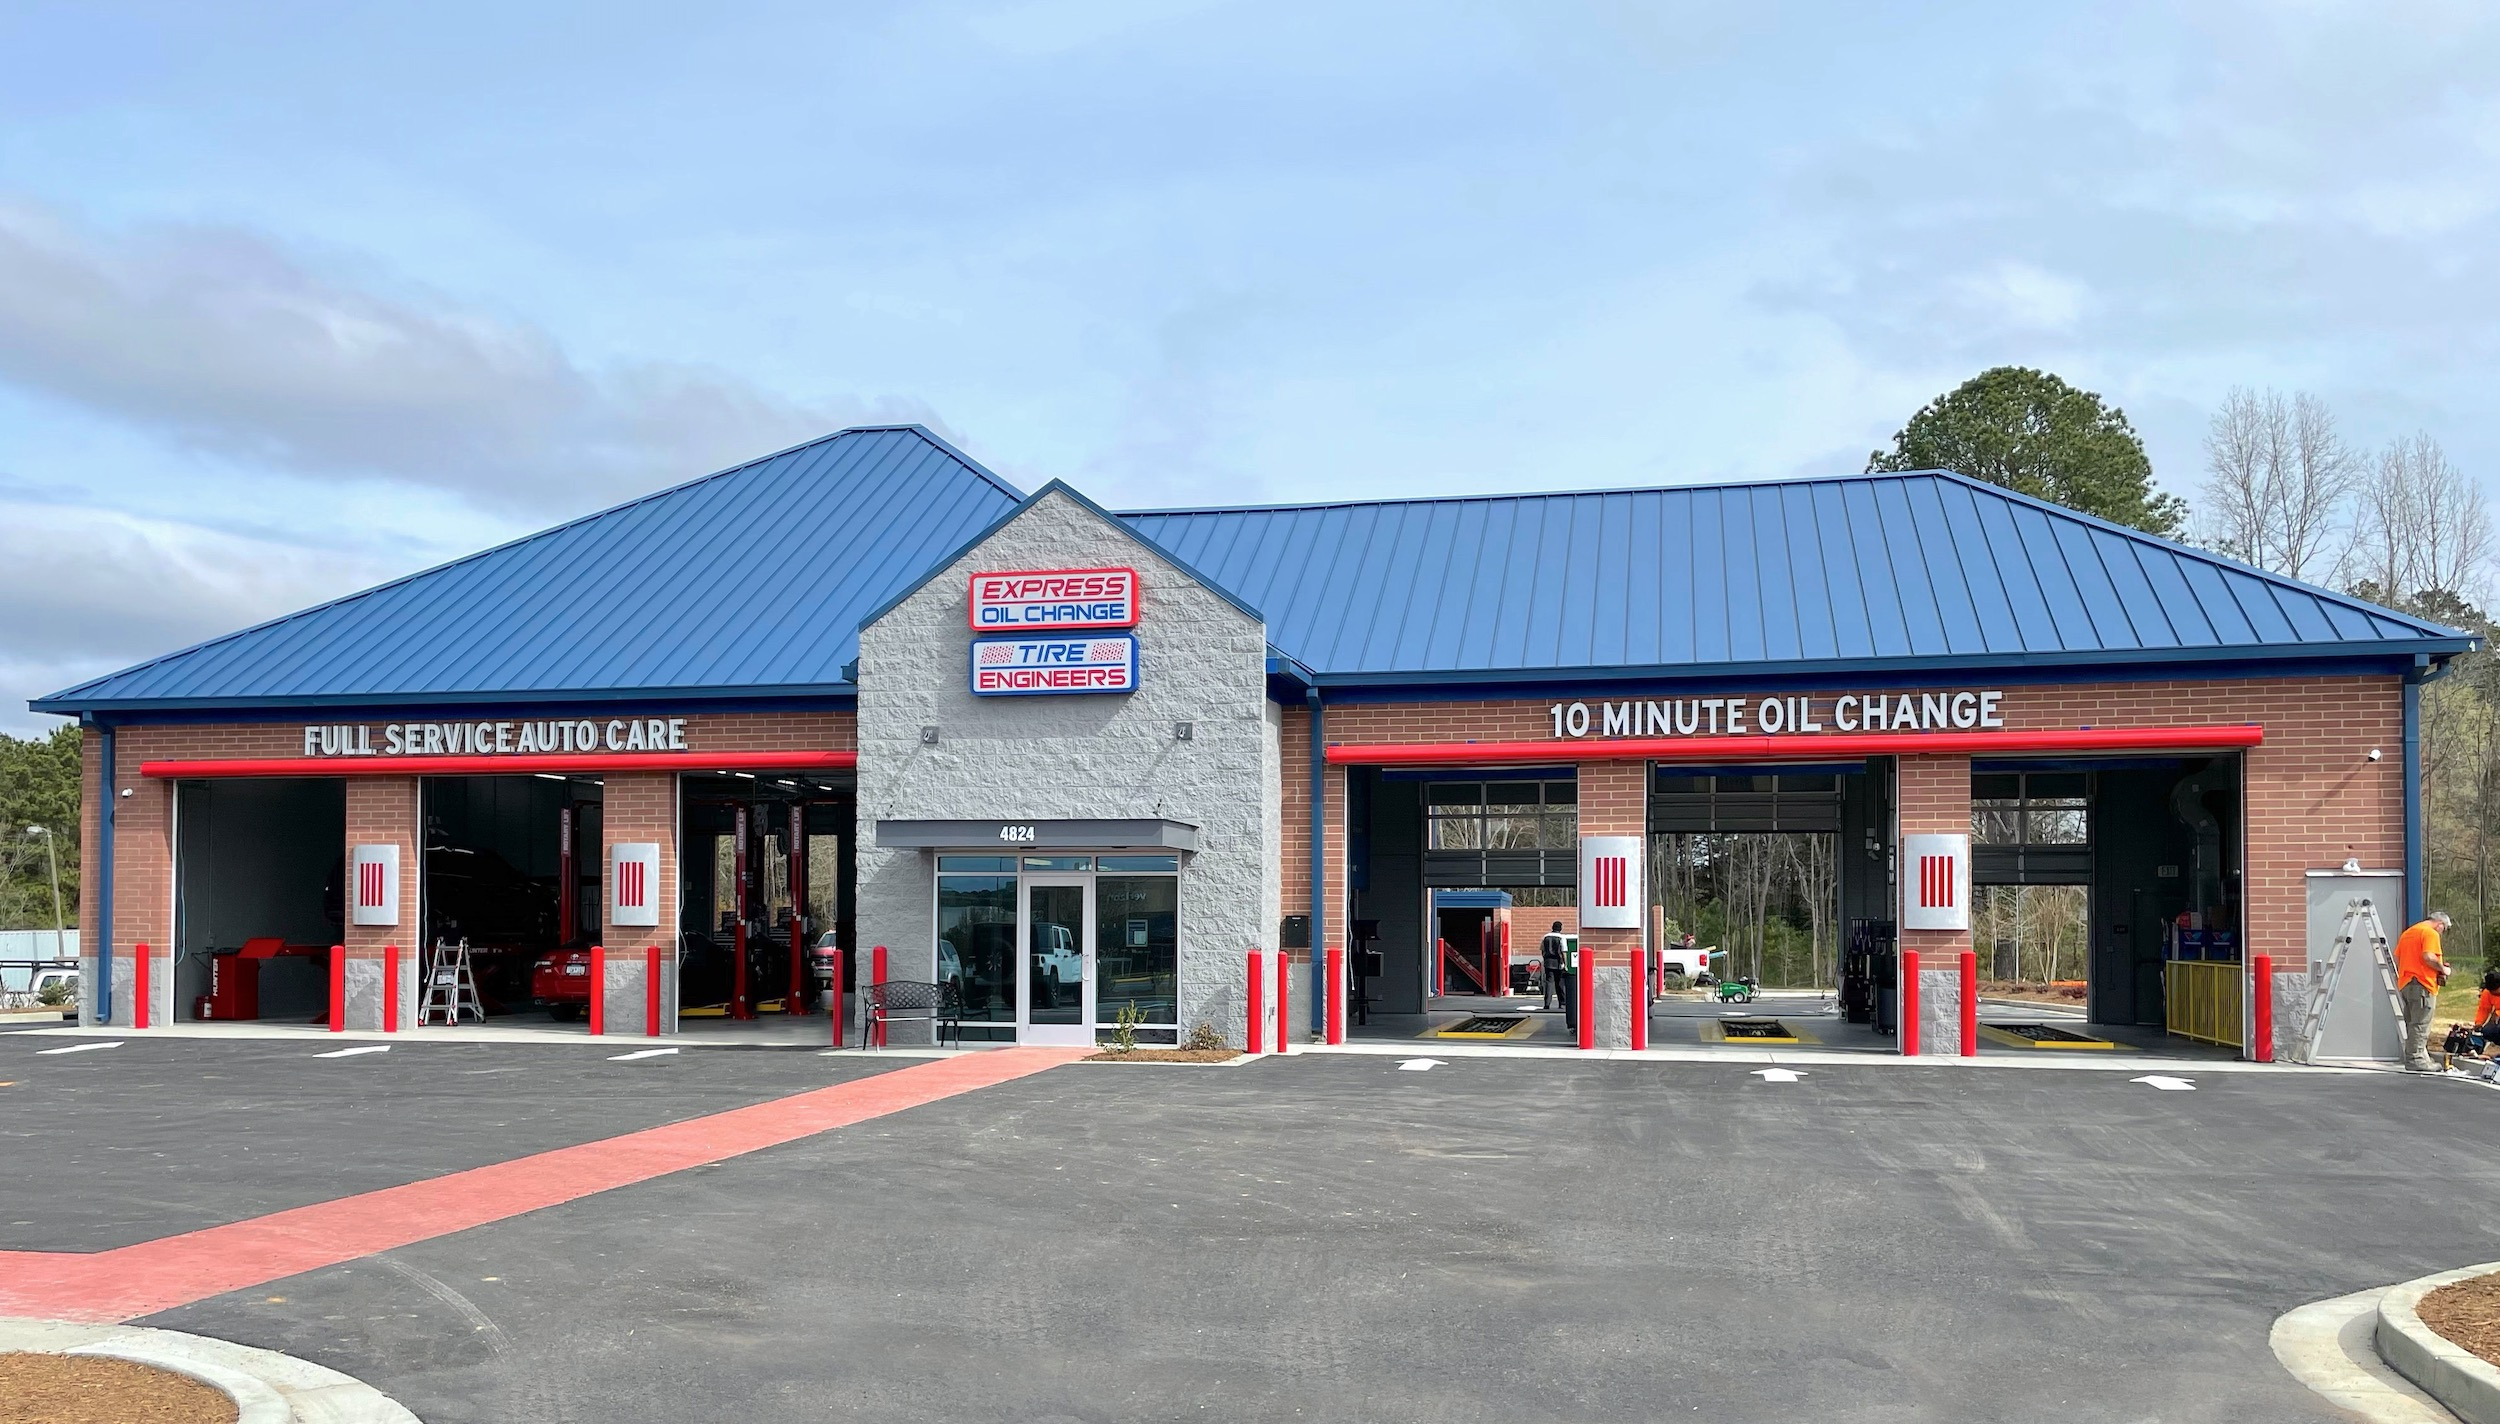 Express Oil Change & Tire Engineers at Rock Hill, SC - Rock Hill Crossing store